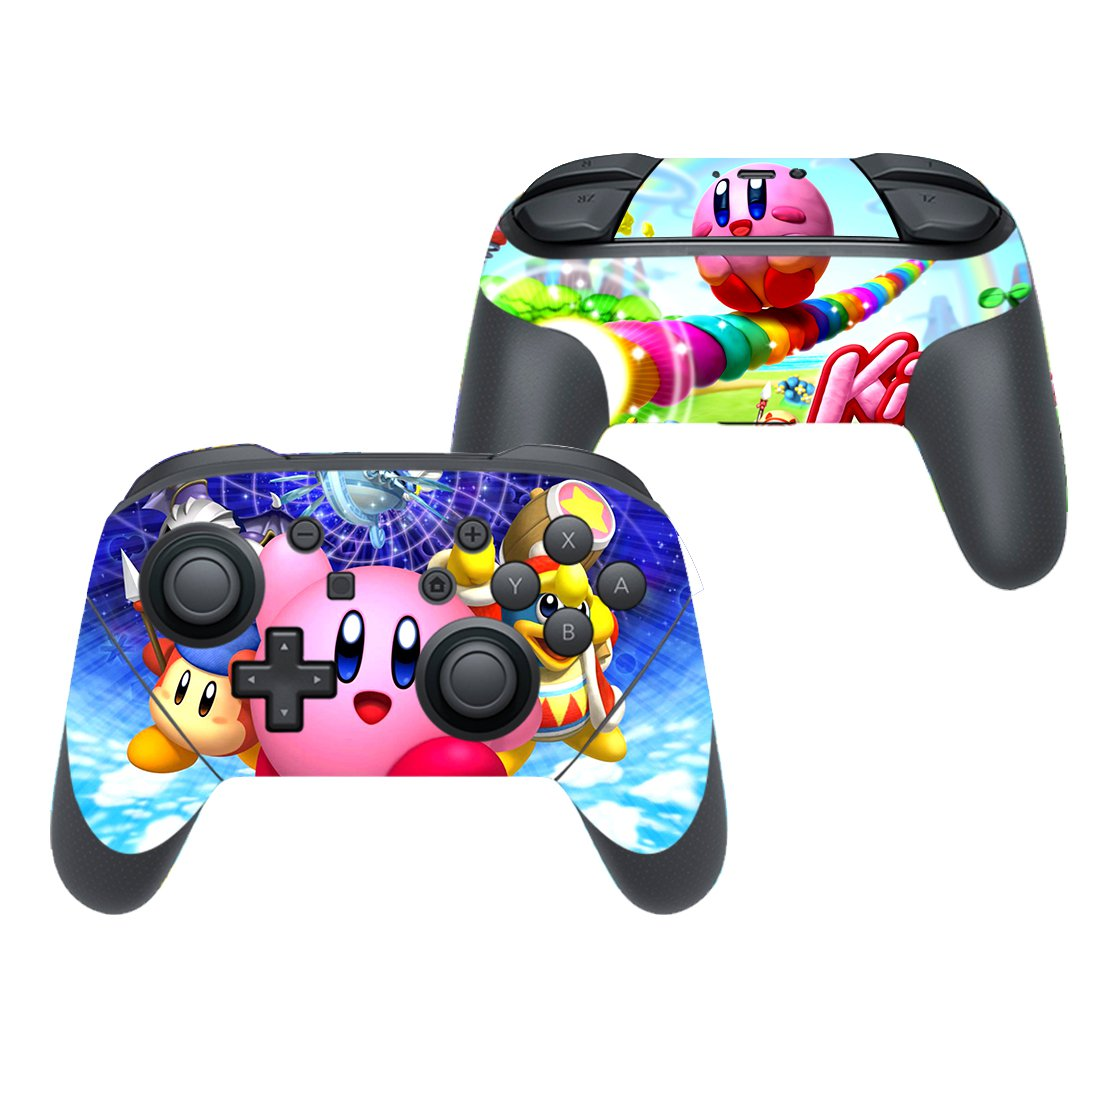 Kirby decal for Nintendo switch controller pro sticker skin